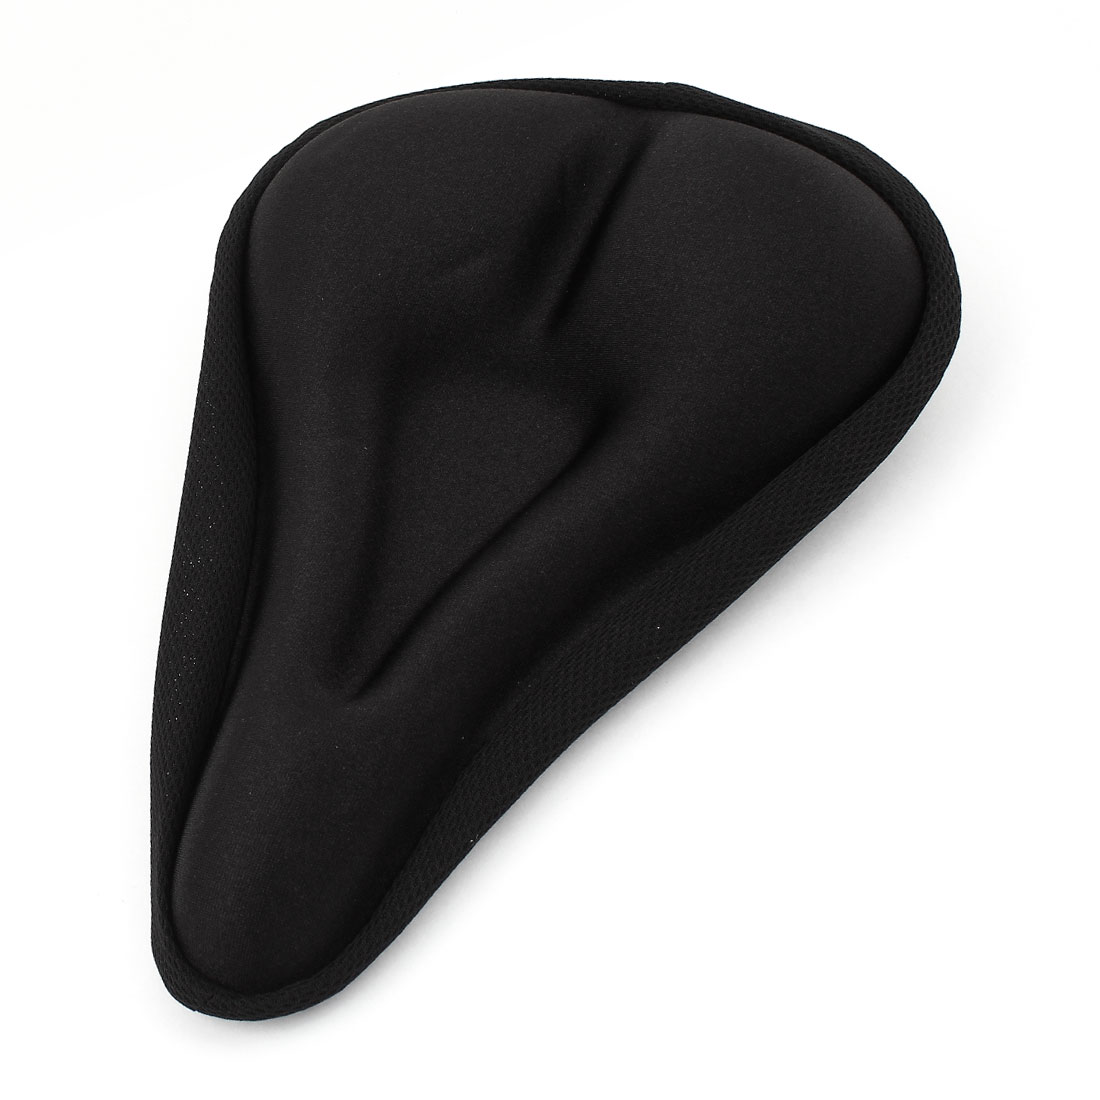 Bicycle Bike Soft Gel Middle Hollow Saddle Seat Antislip Cover Cushion Pad Black